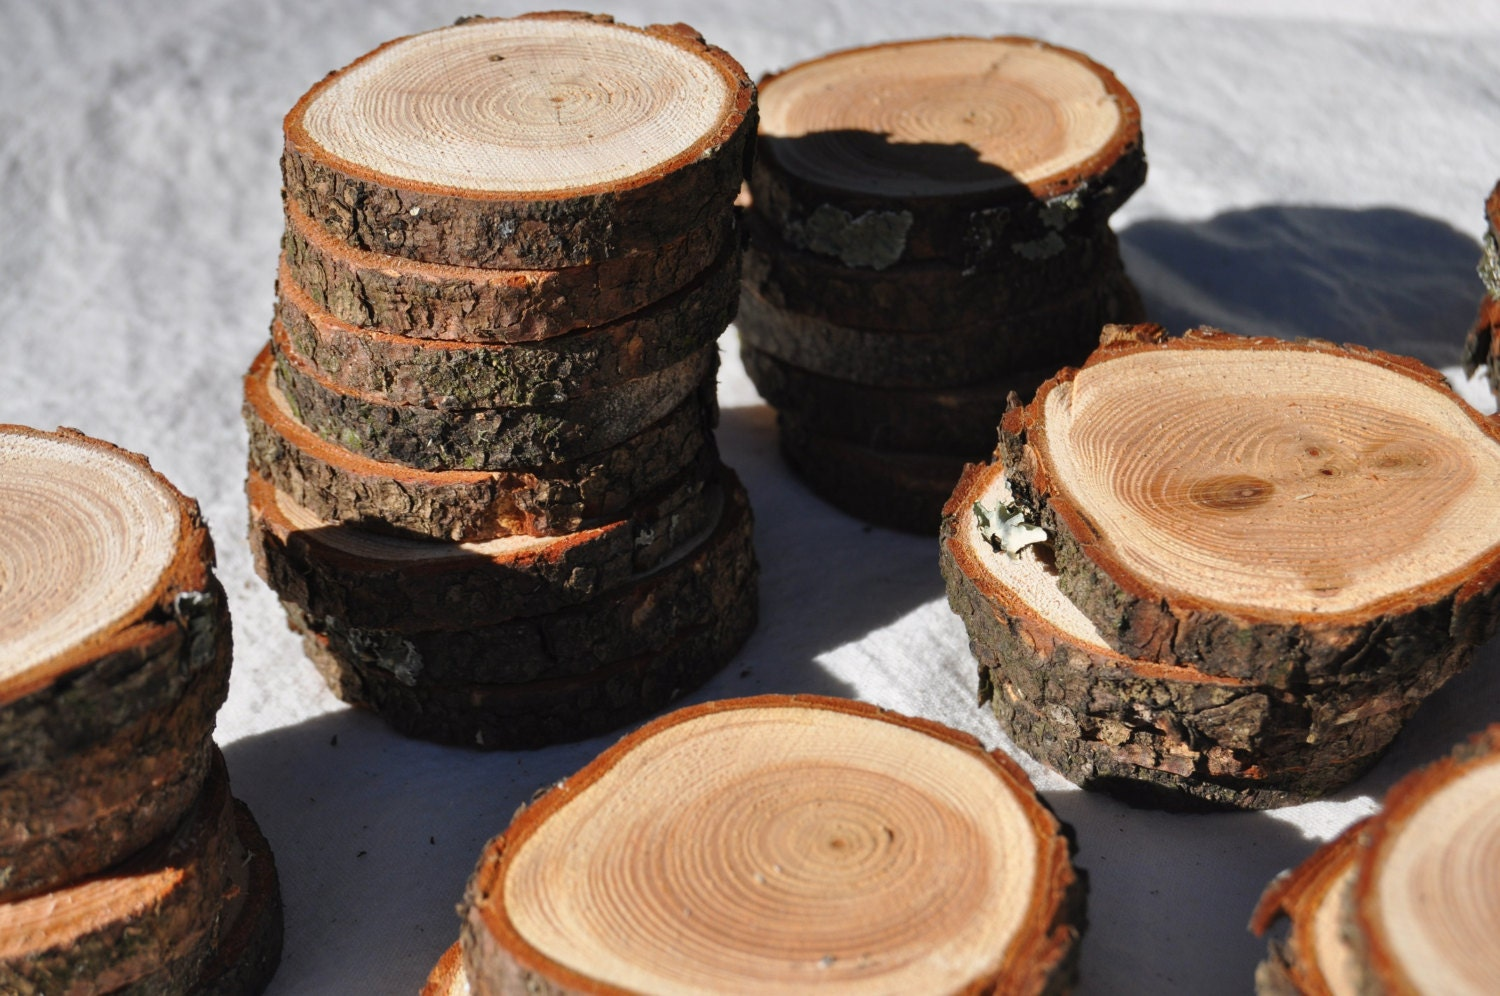 100 wood slices on sale 2 wood slices wholesale wood for Wholesale craft supplies in bulk